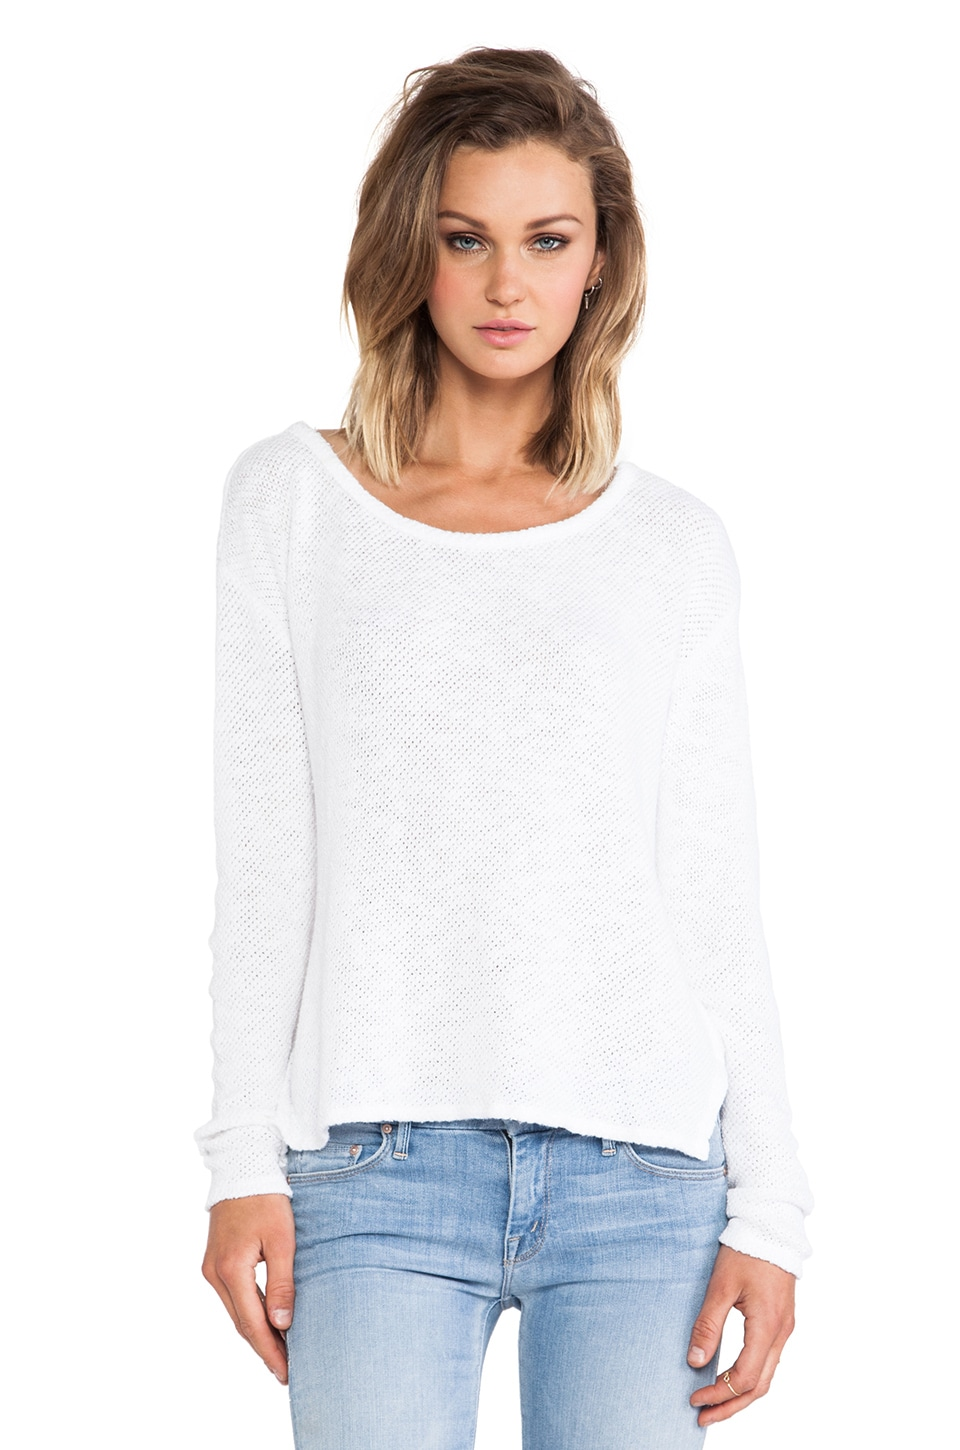 Velvet by Graham & Spencer Peta Cotton Crochet Sweater in White